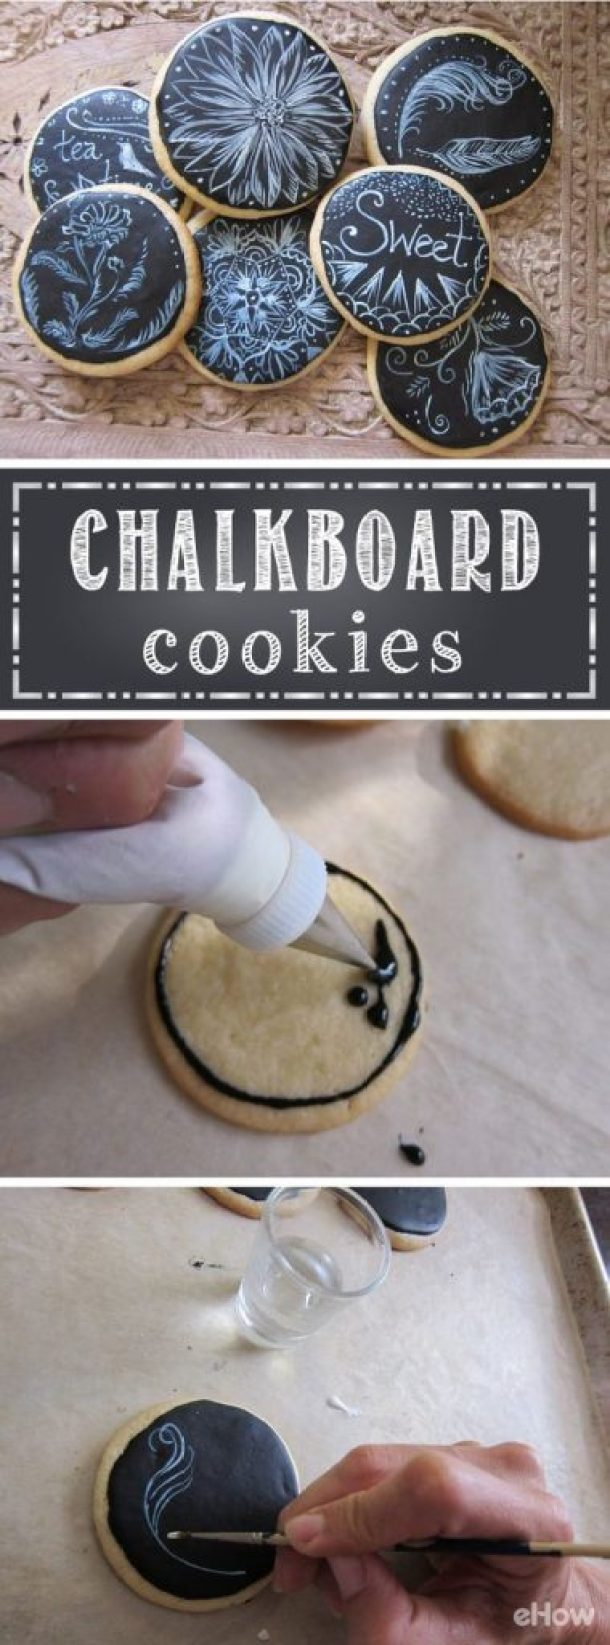 How to create Chalkboard Sugar Cookies! | eHow